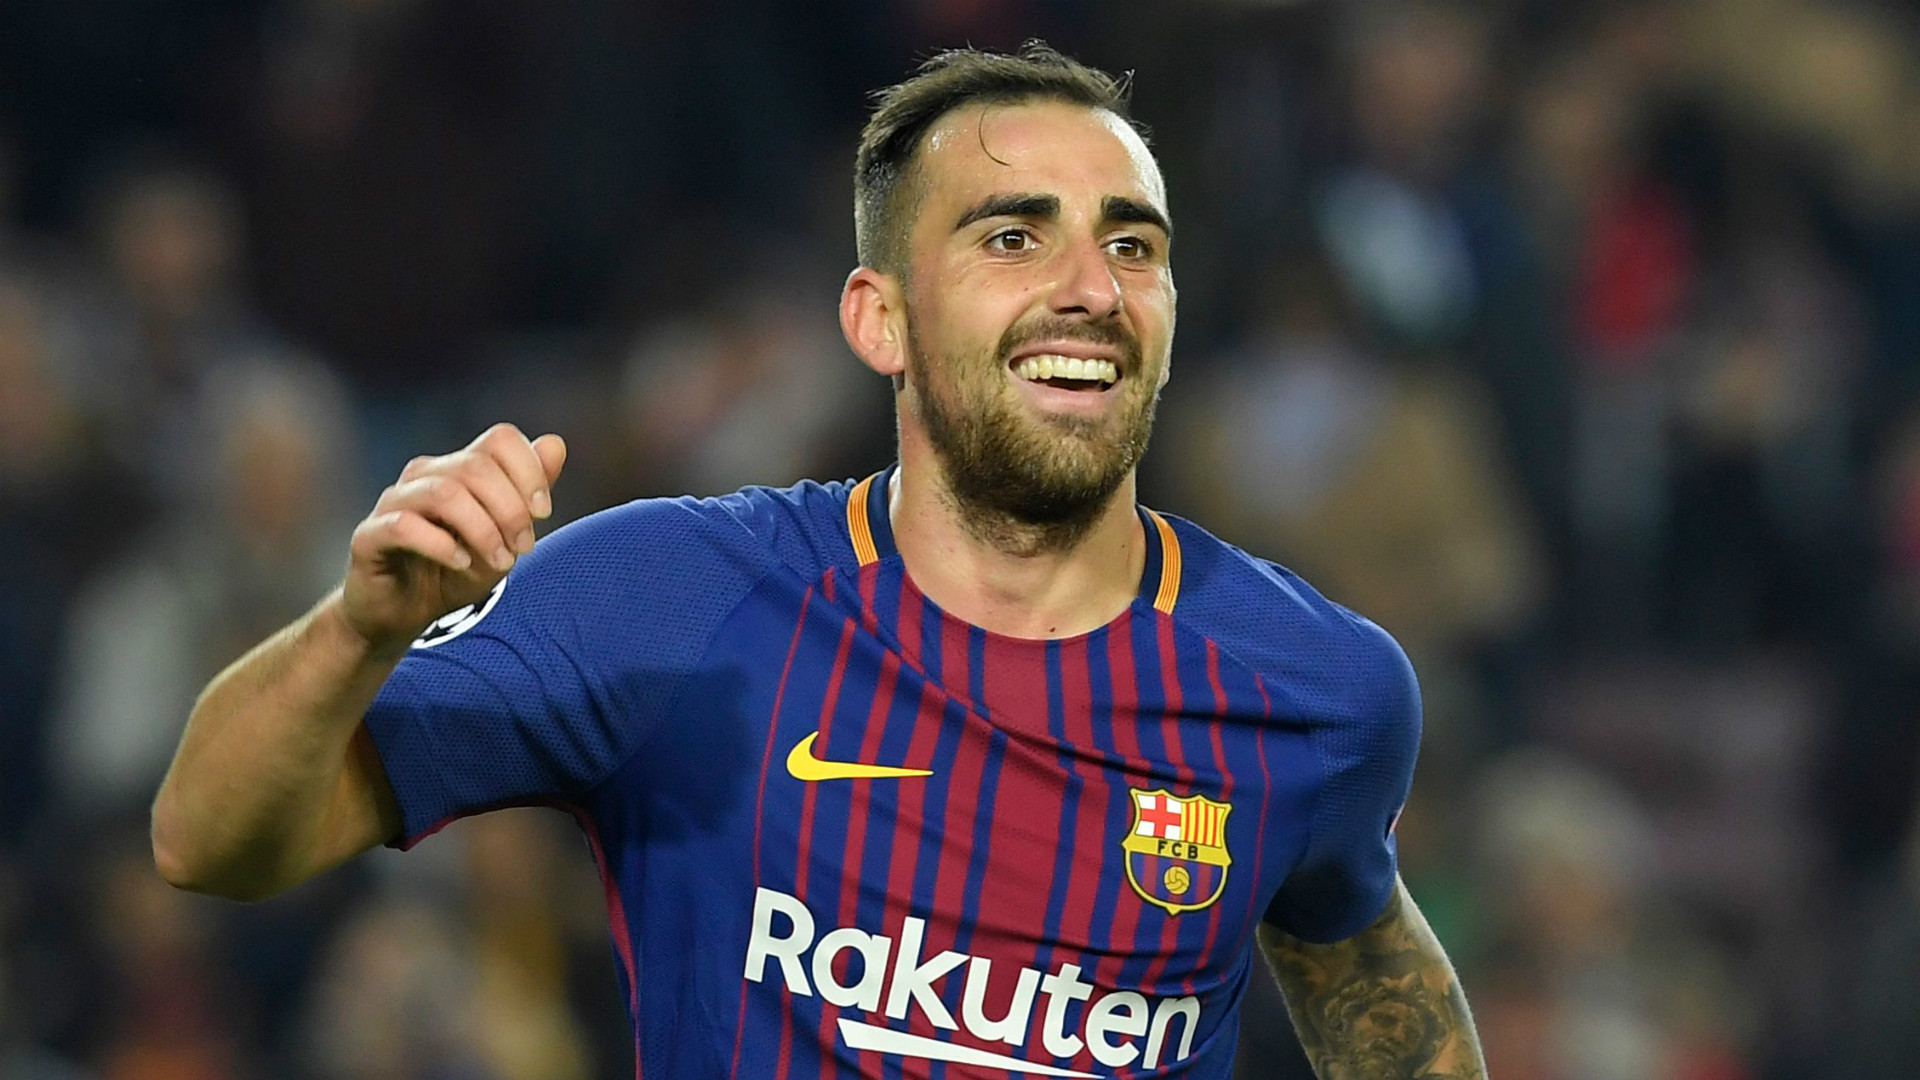 Borussia Dortmund sign Barcelona striker Paco Alcacer on one-year loan